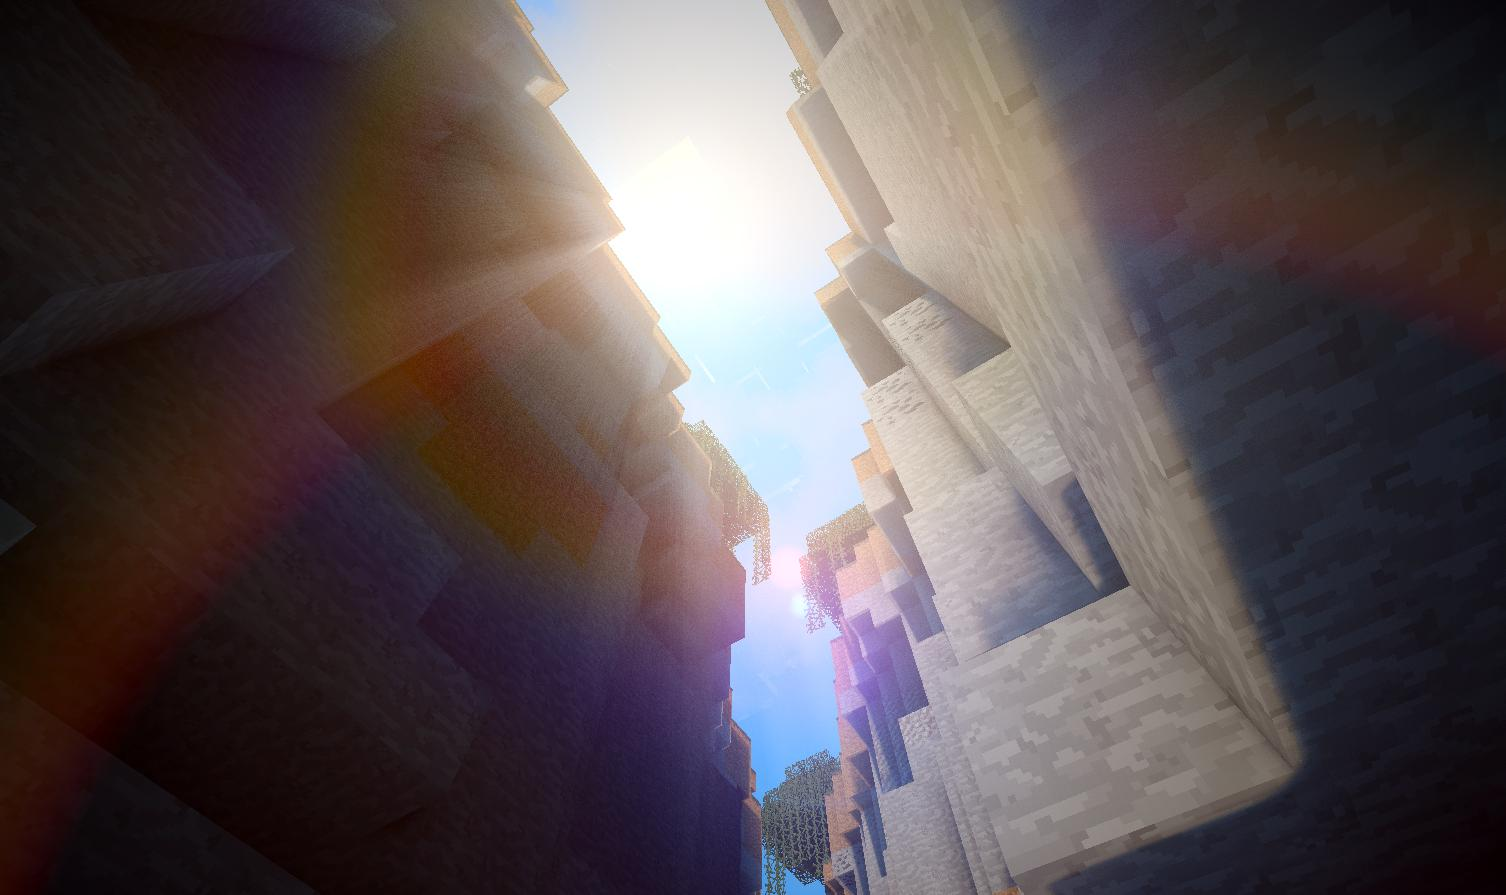 http://minecraft-forum.net/wp-content/uploads/2013/02/49c19__MAC-Shaders-Mod-3.jpg